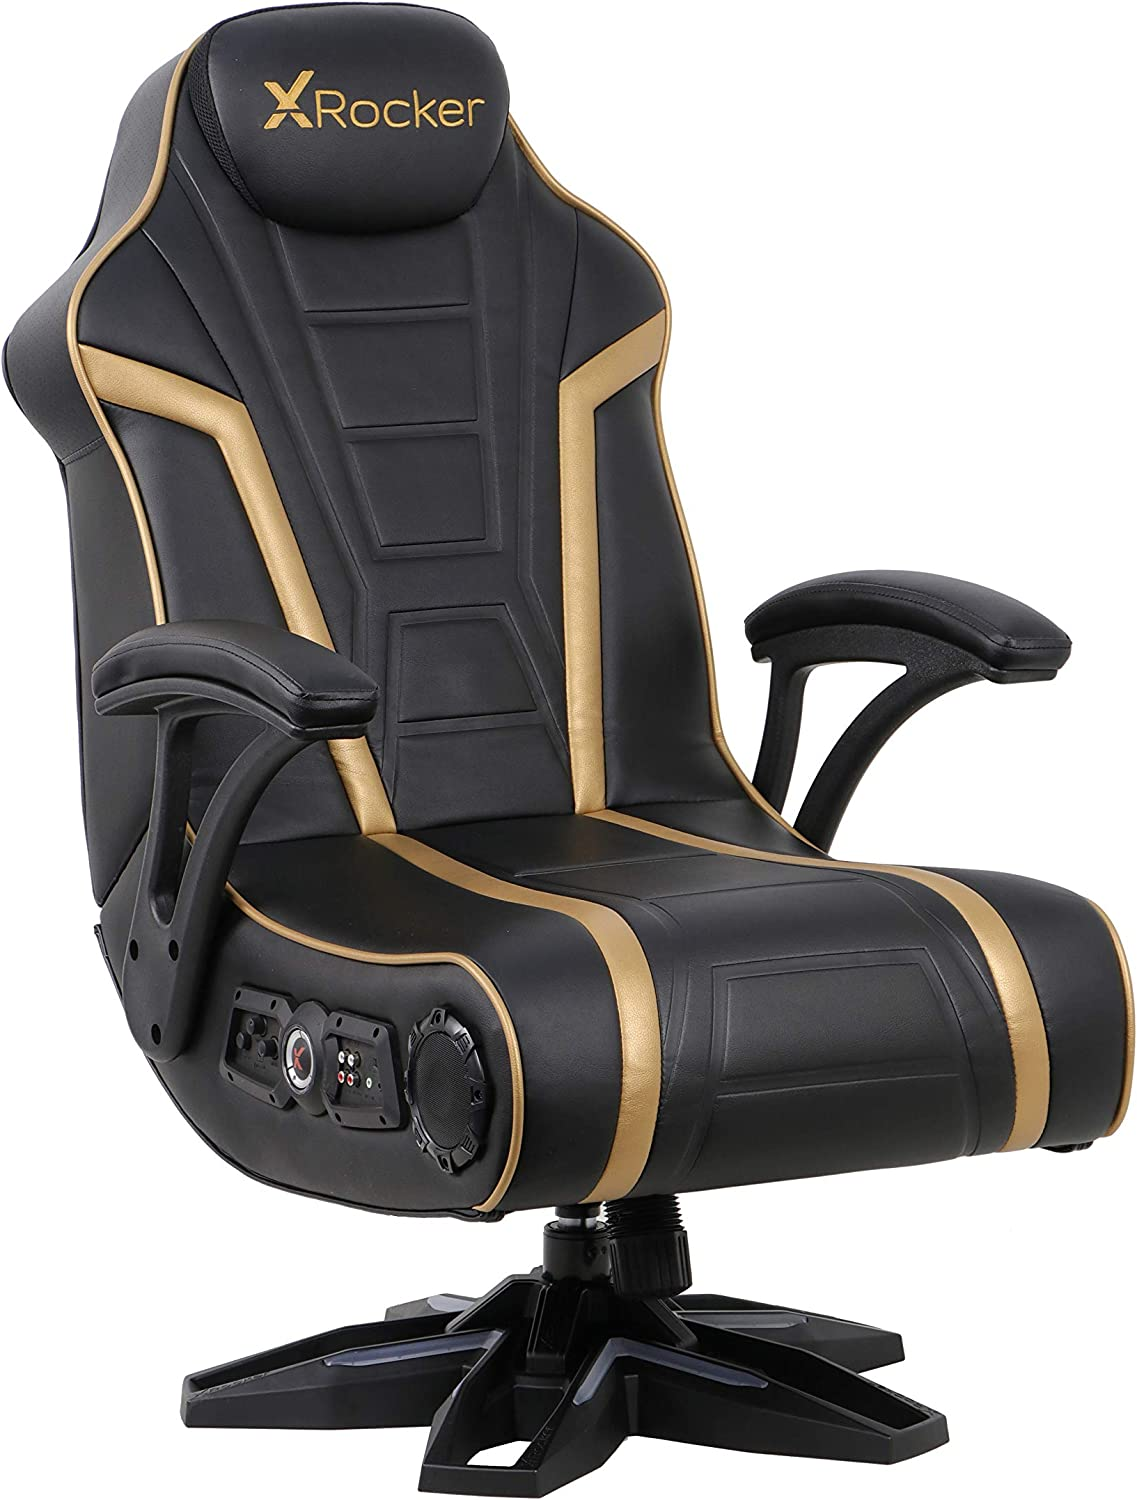 4.77 Gaming Chair on Amazon!